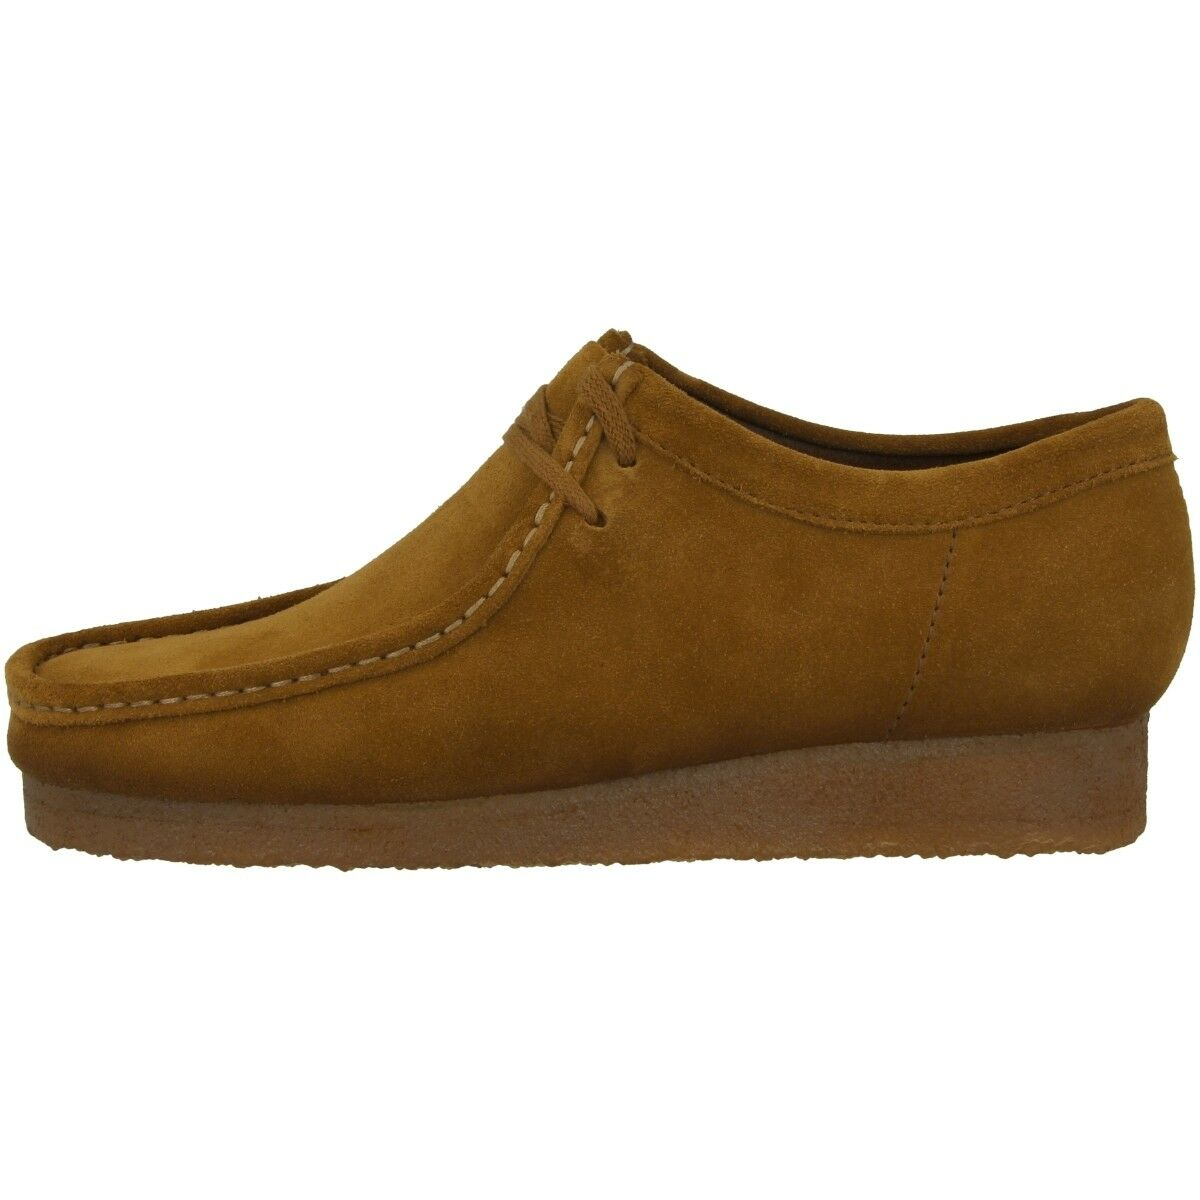 Clarks Wallabee Chaussures Hommes Chaussures Basses Chaussure Lacée Mocassins Cola 26133280